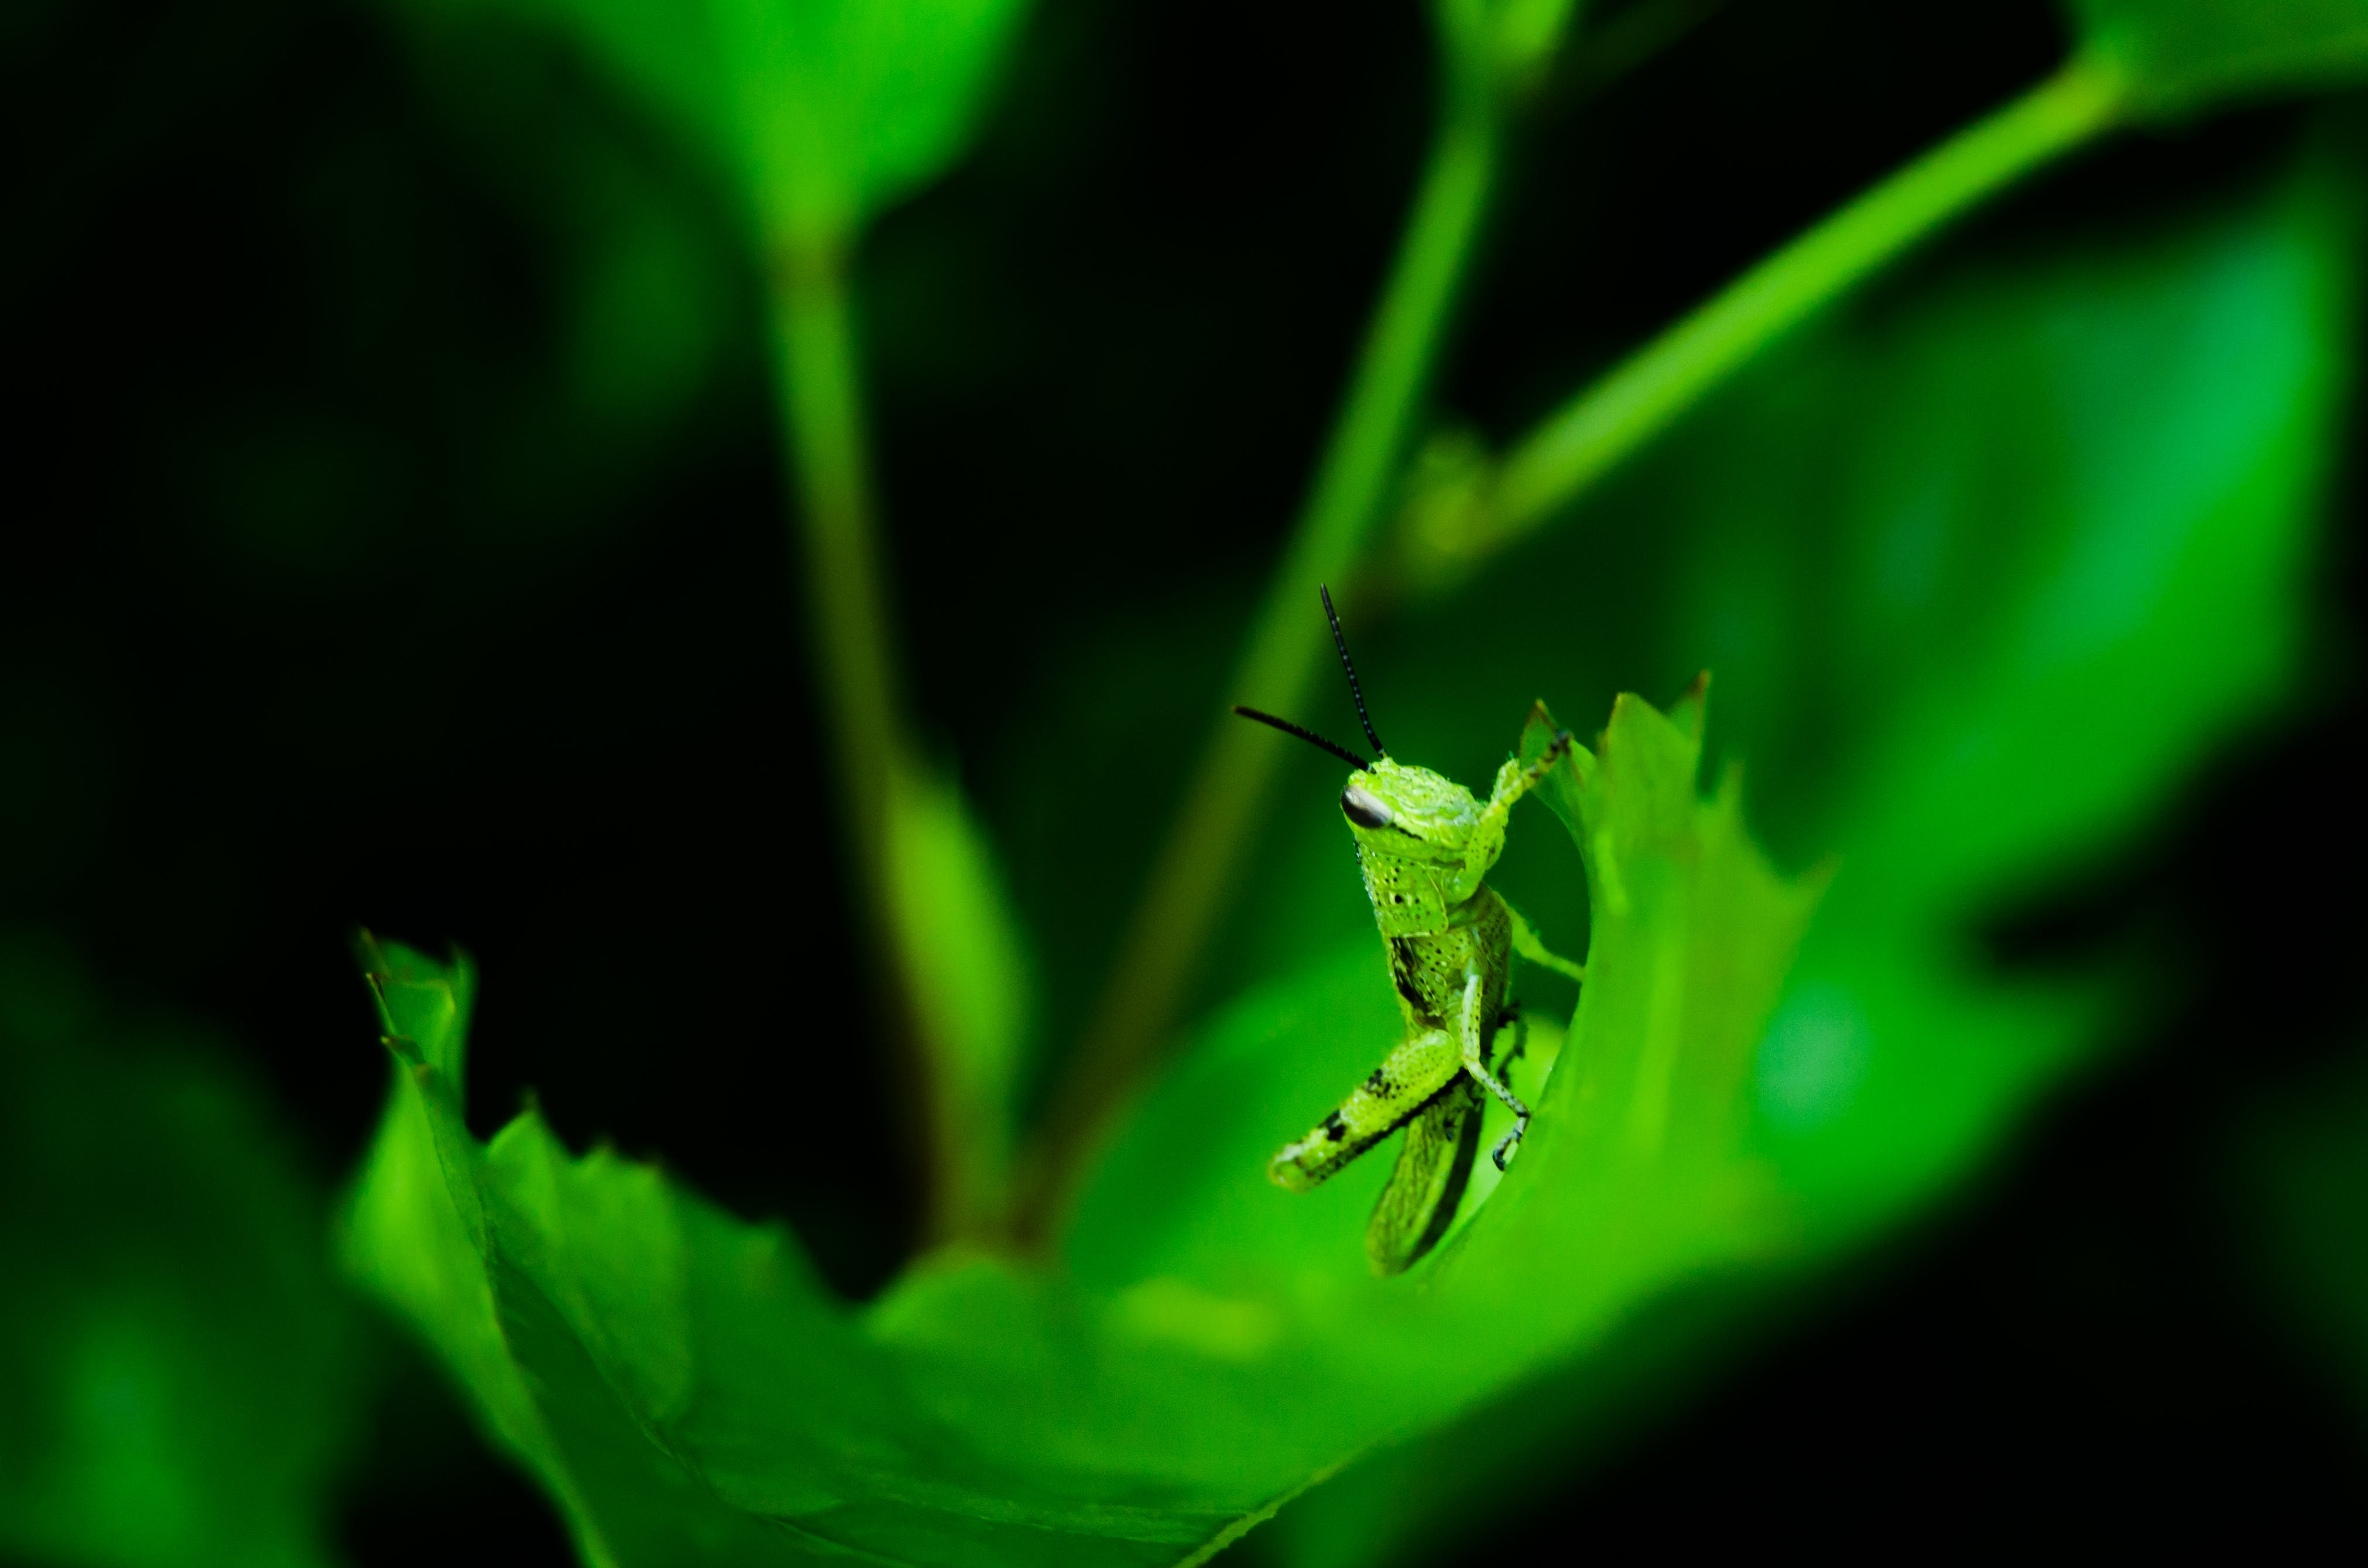 Free stock photo of leaves, grasshopper, green leaf